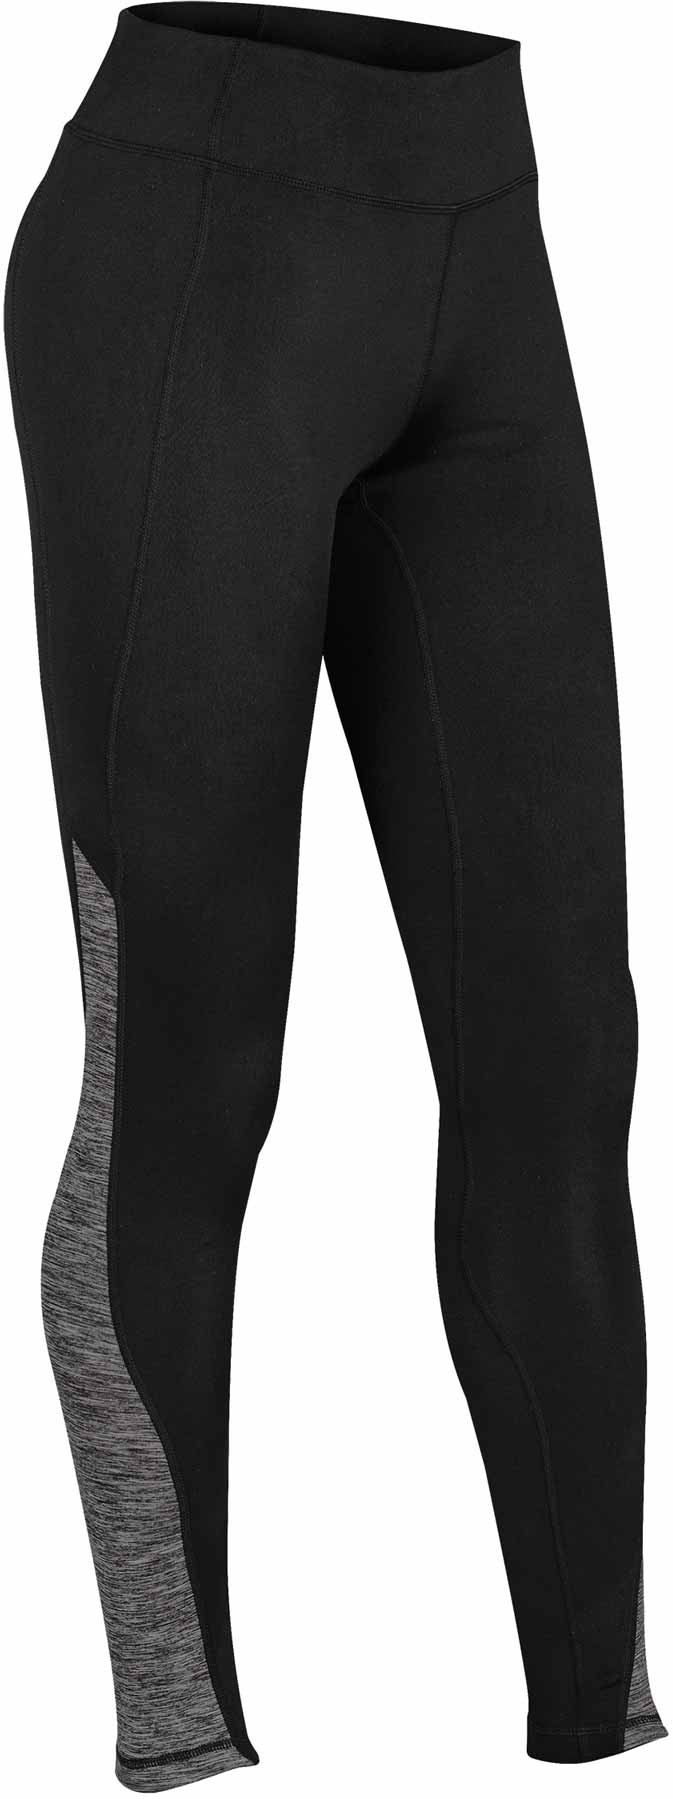 Stormtech Women's Lotus Yoga Pant